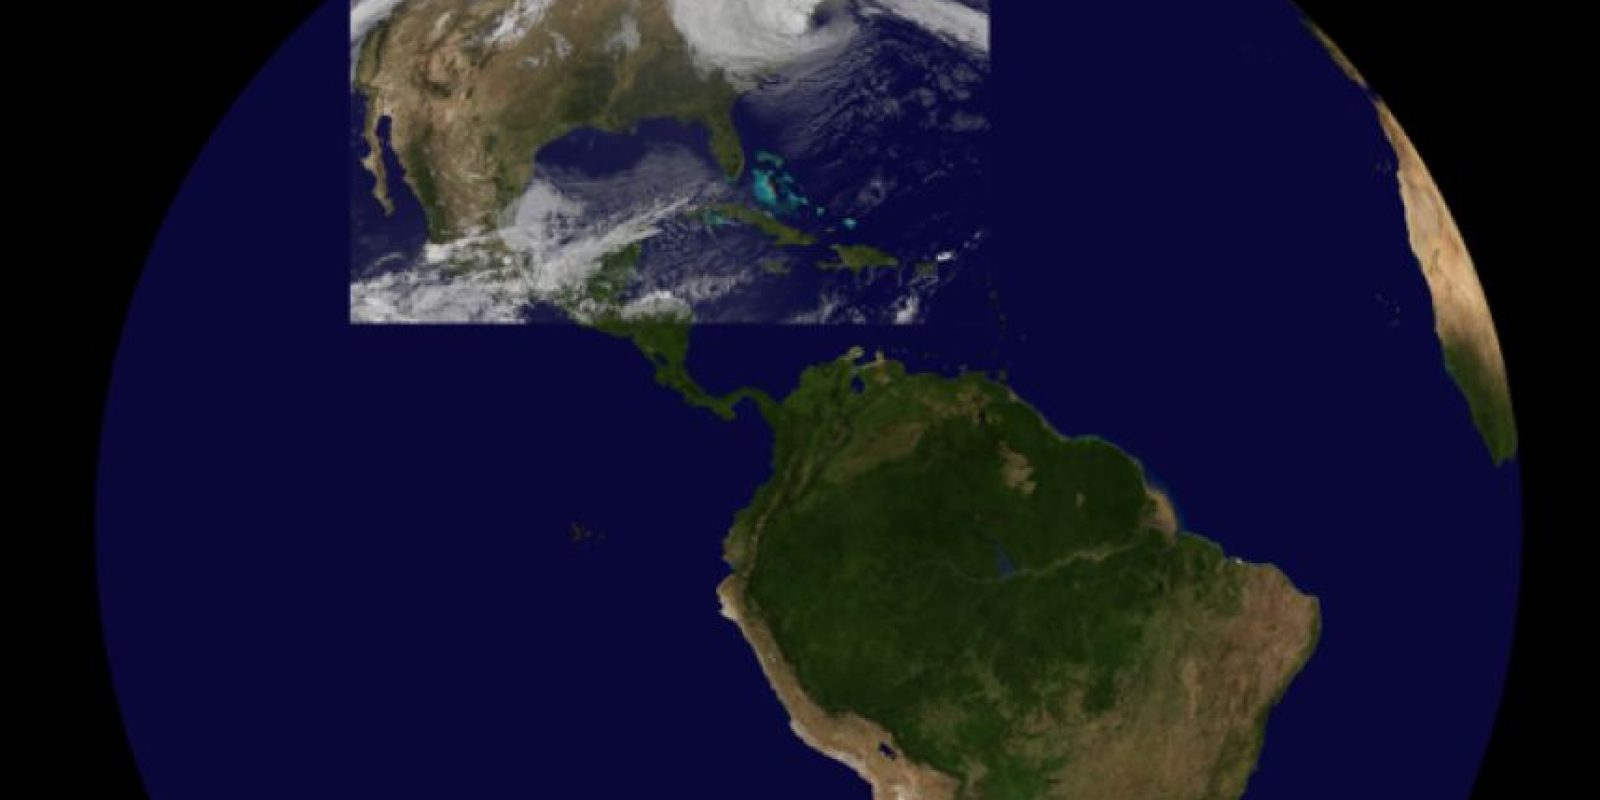 Foto: http://goes.gsfc.nasa.gov